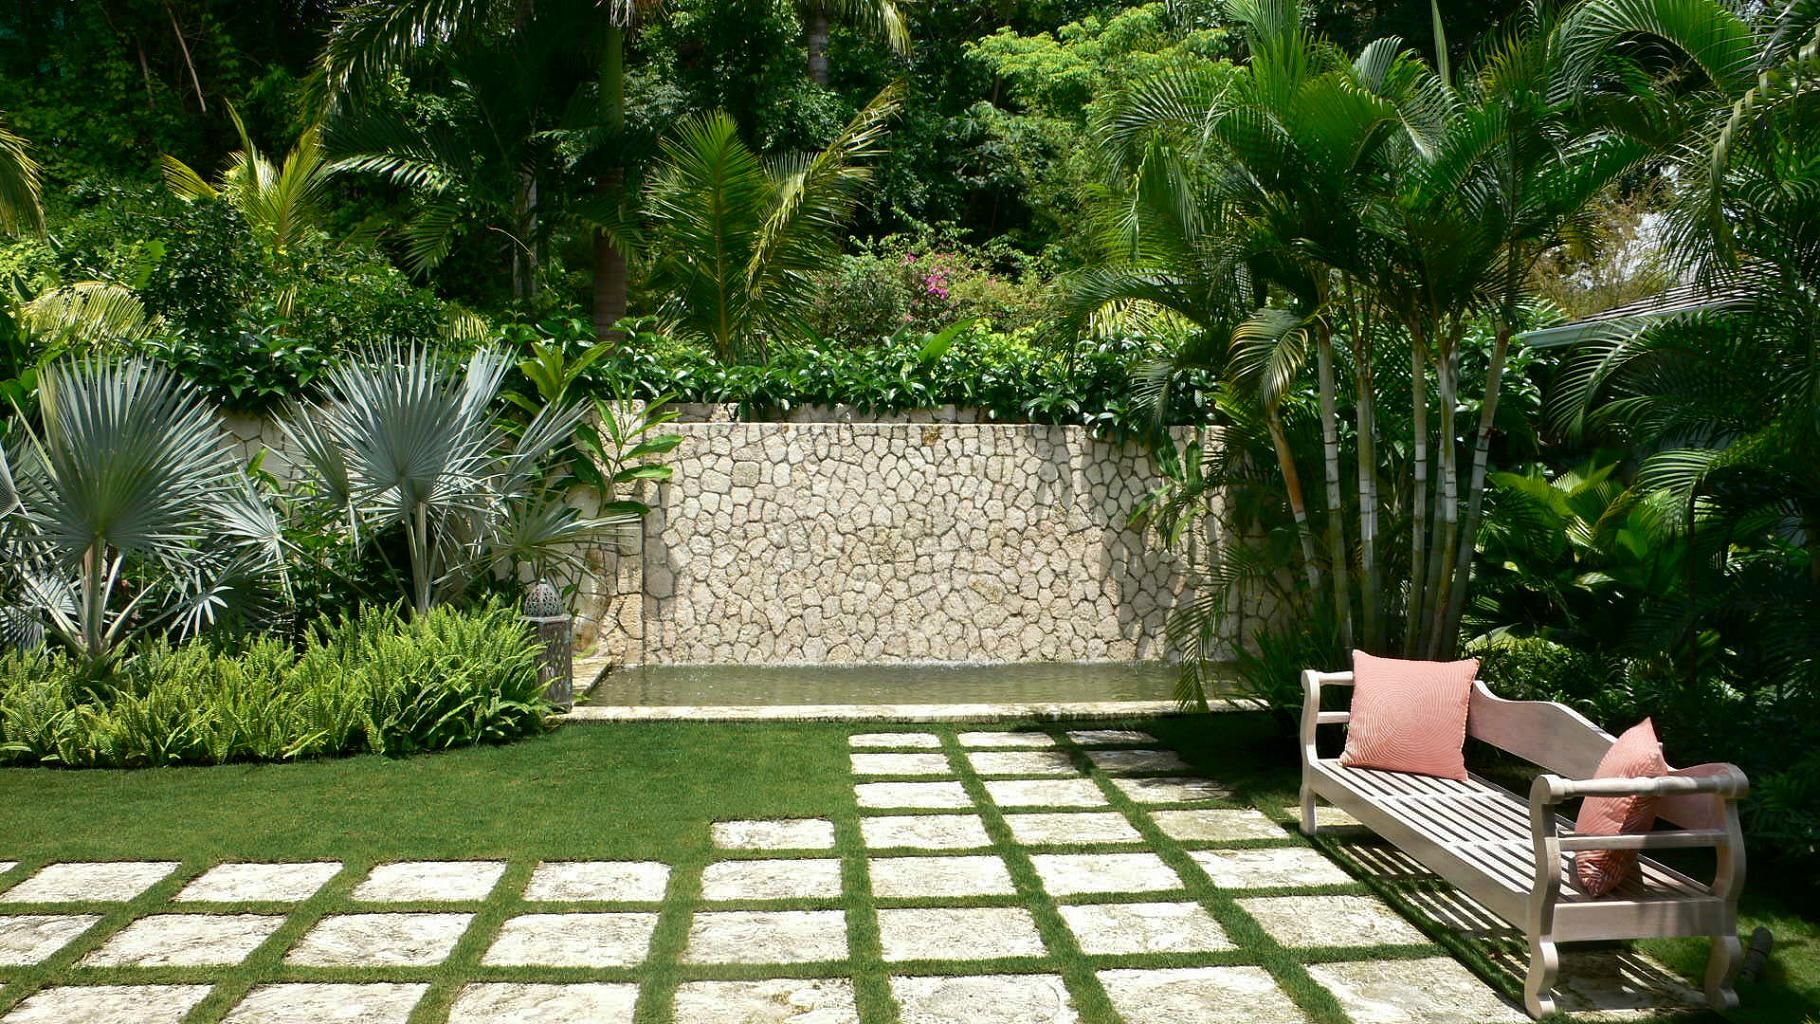 Backyard Garden Design Ideas Fabulous Backyard Garden Design Ideas ...